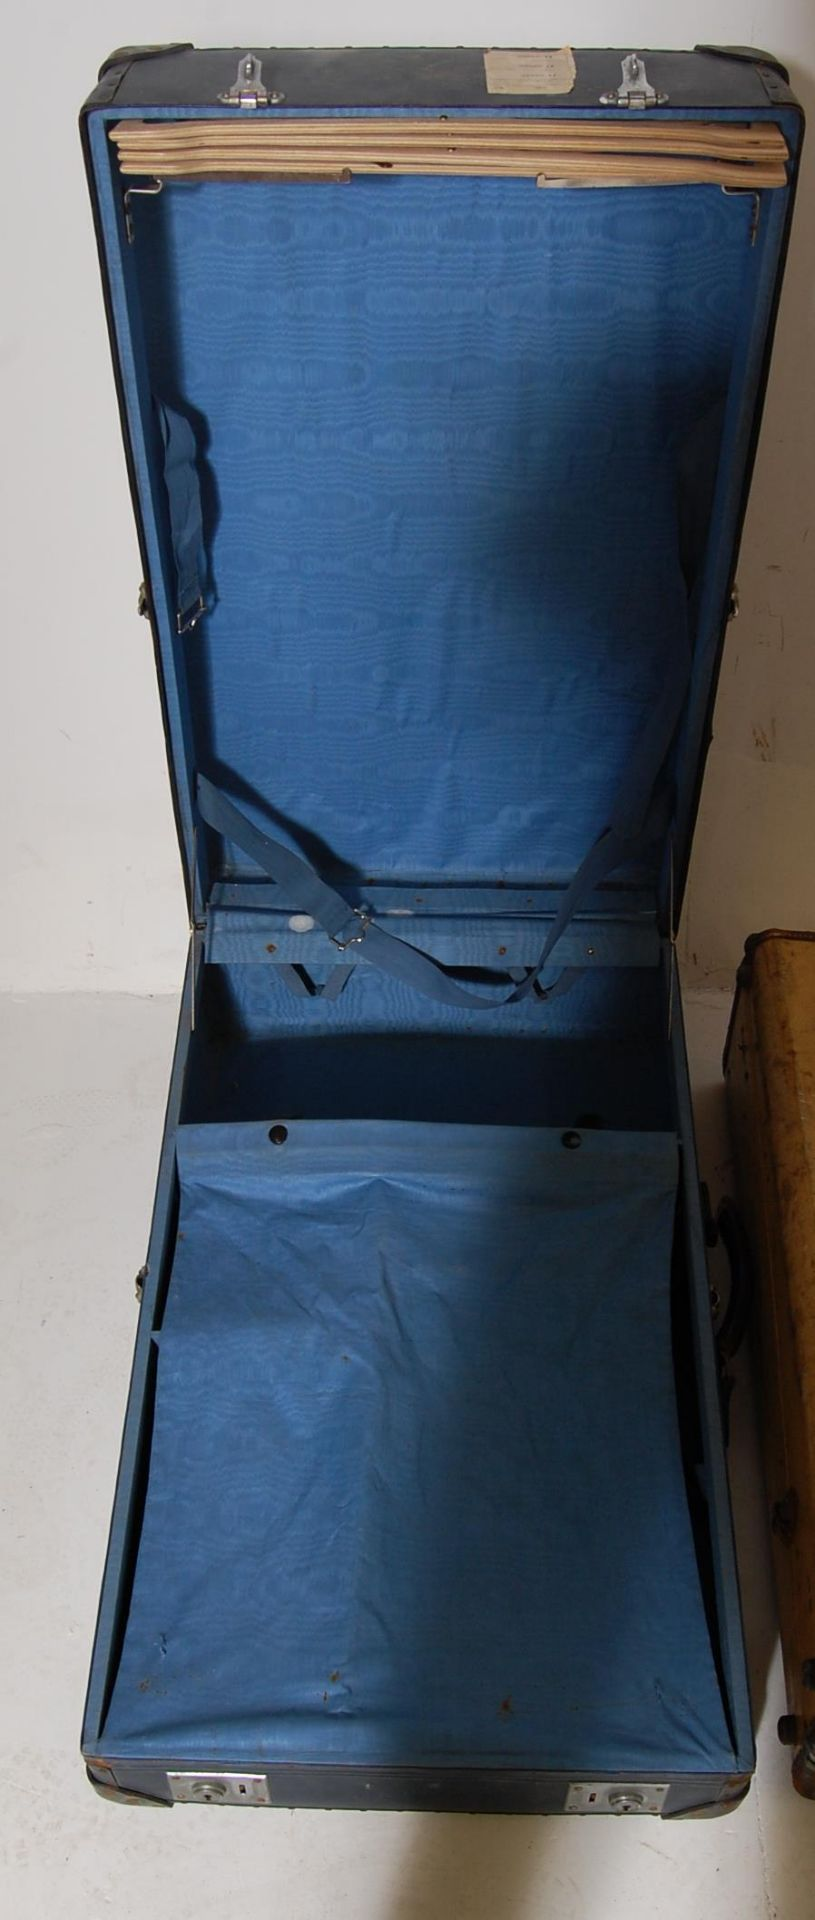 COLLECTION OF THREE EARLY 20TH CENTURY STEAMER TRUNKS - Image 7 of 12